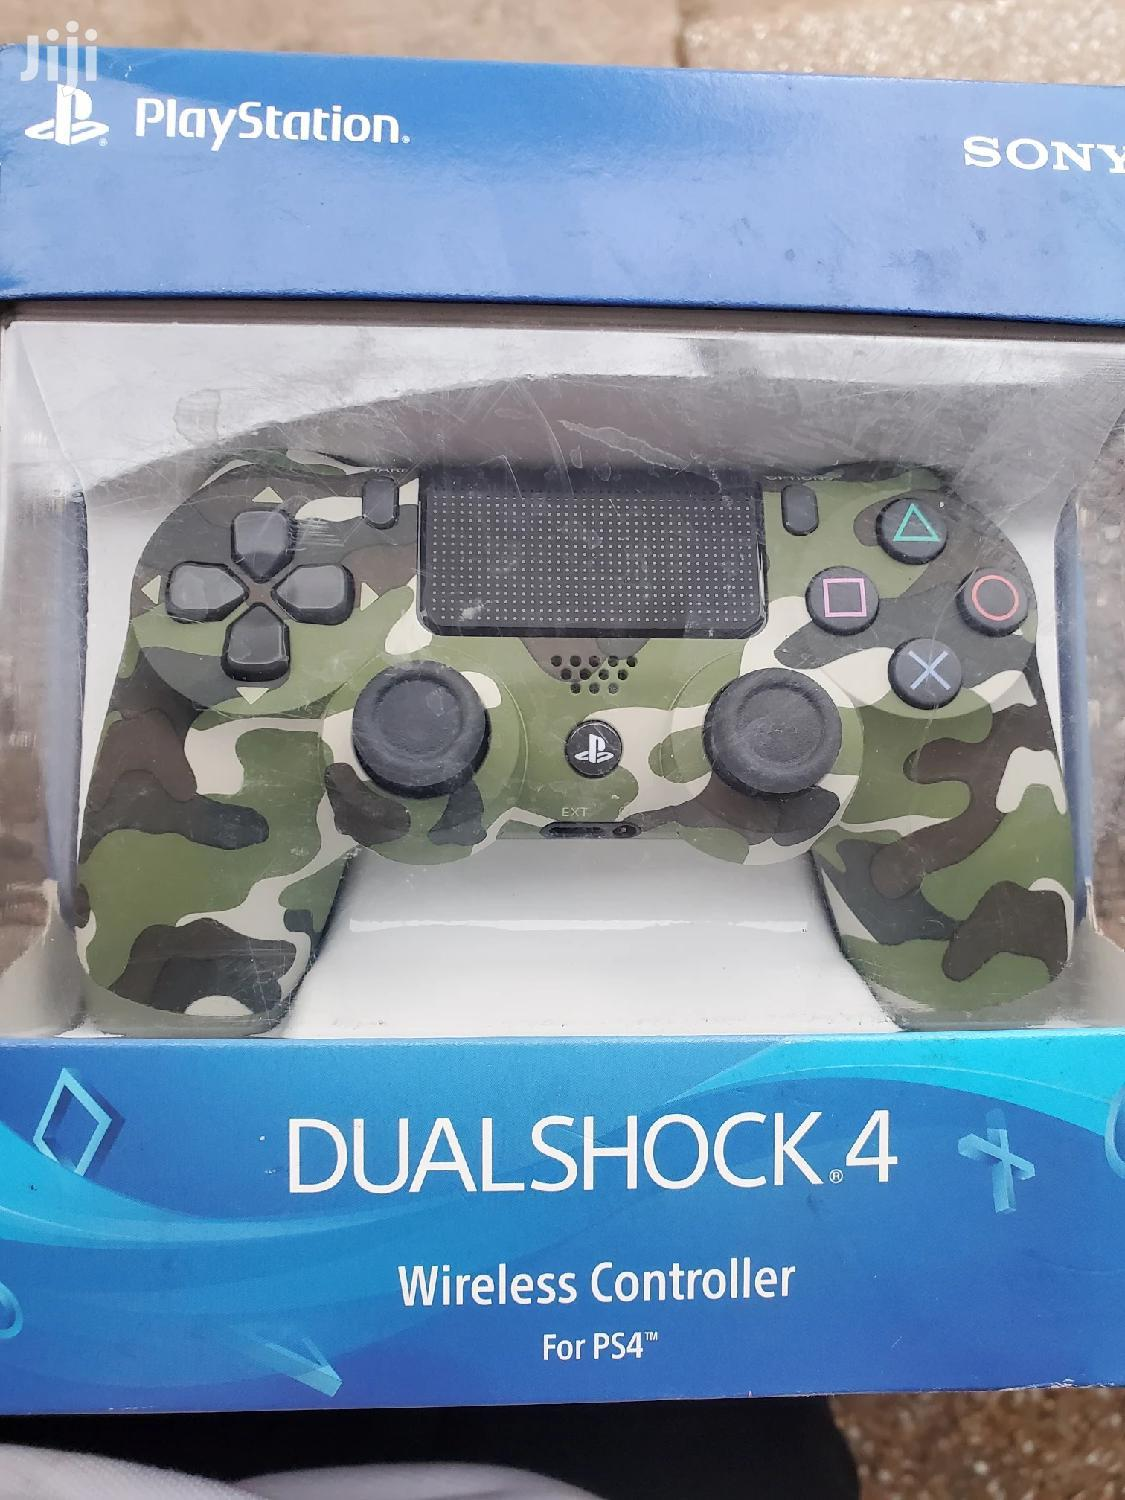 Archive: Dualshock 4 Wireless Controller Playstation 4 Camouflage